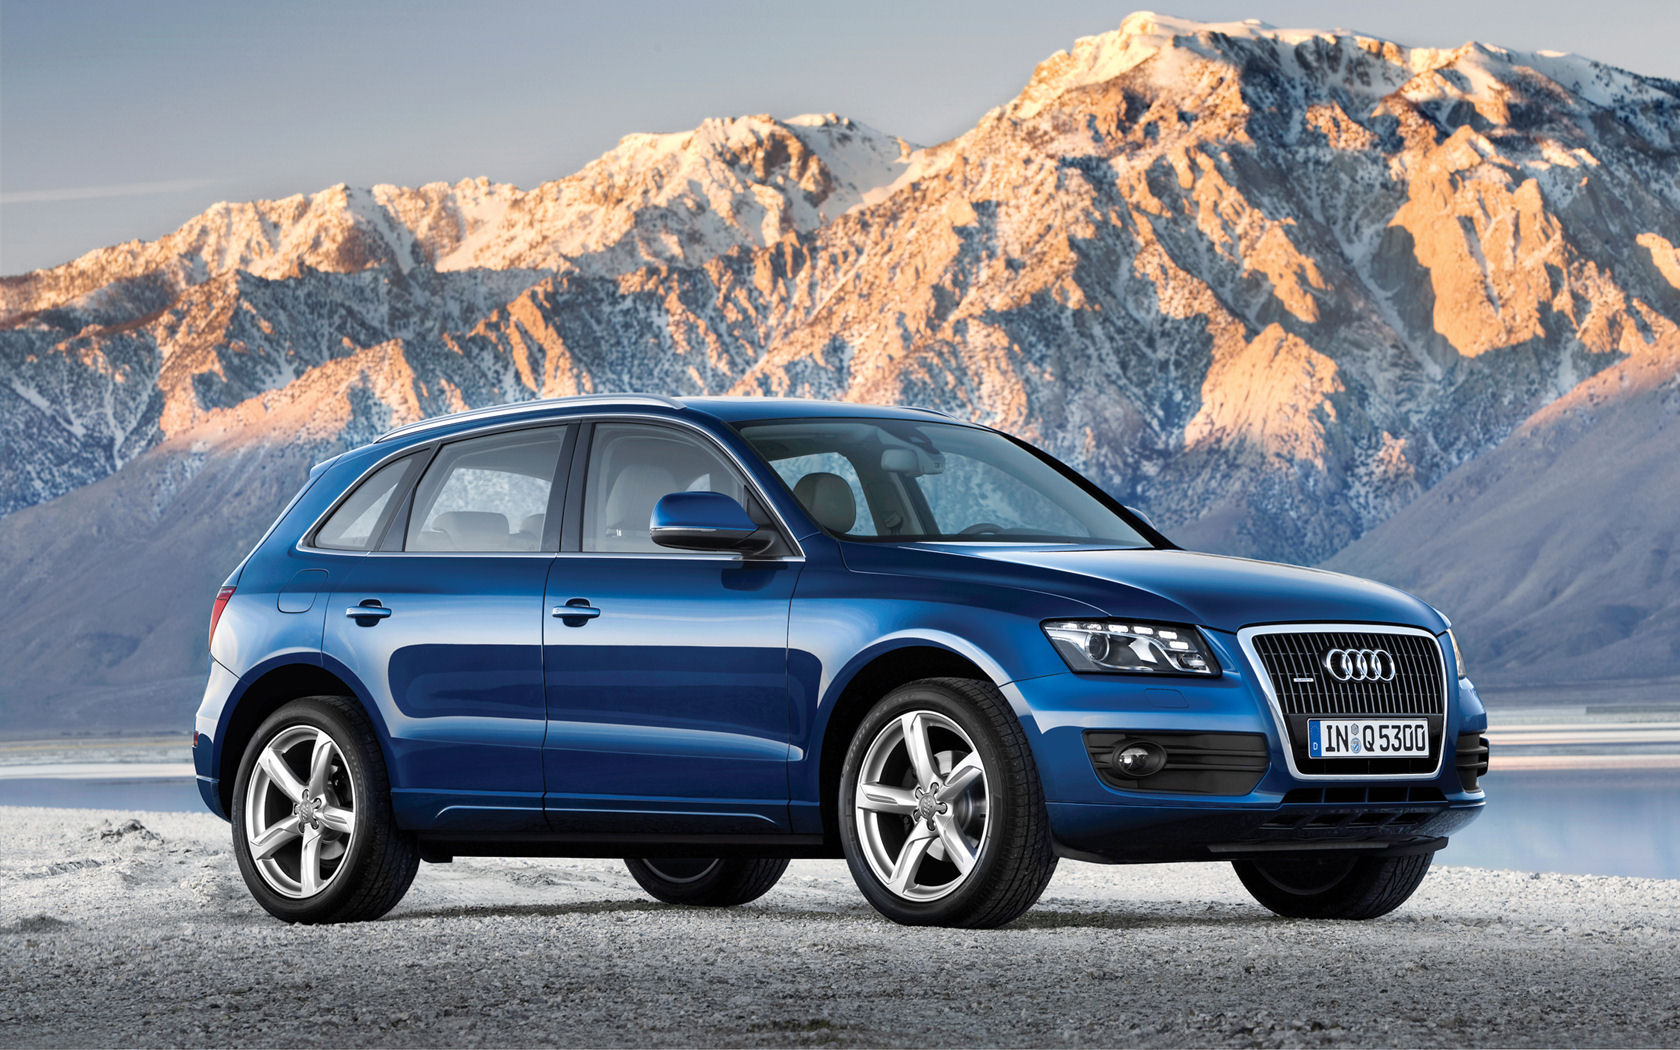 1680x1050 - Audi Q5 Wallpapers 7